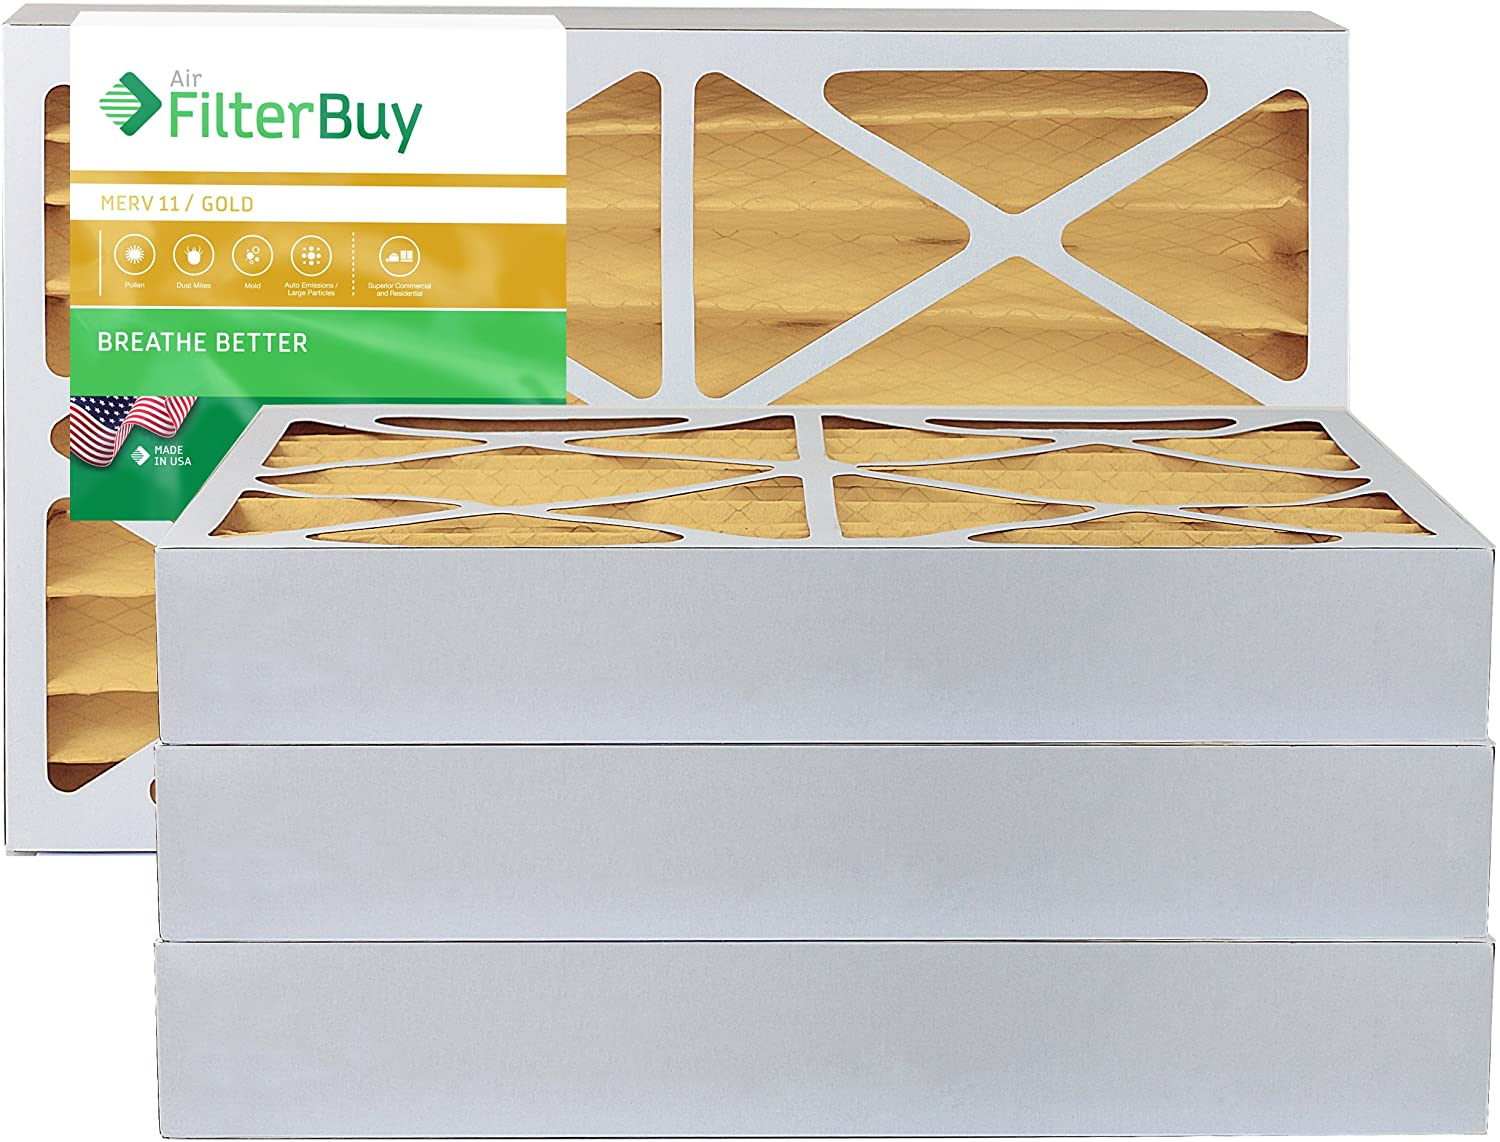 FilterBuy 18x20x4 MERV 11 Pleated AC Furnace Air Filter, (Pack of 4 Filters), 18x20x4 – Gold